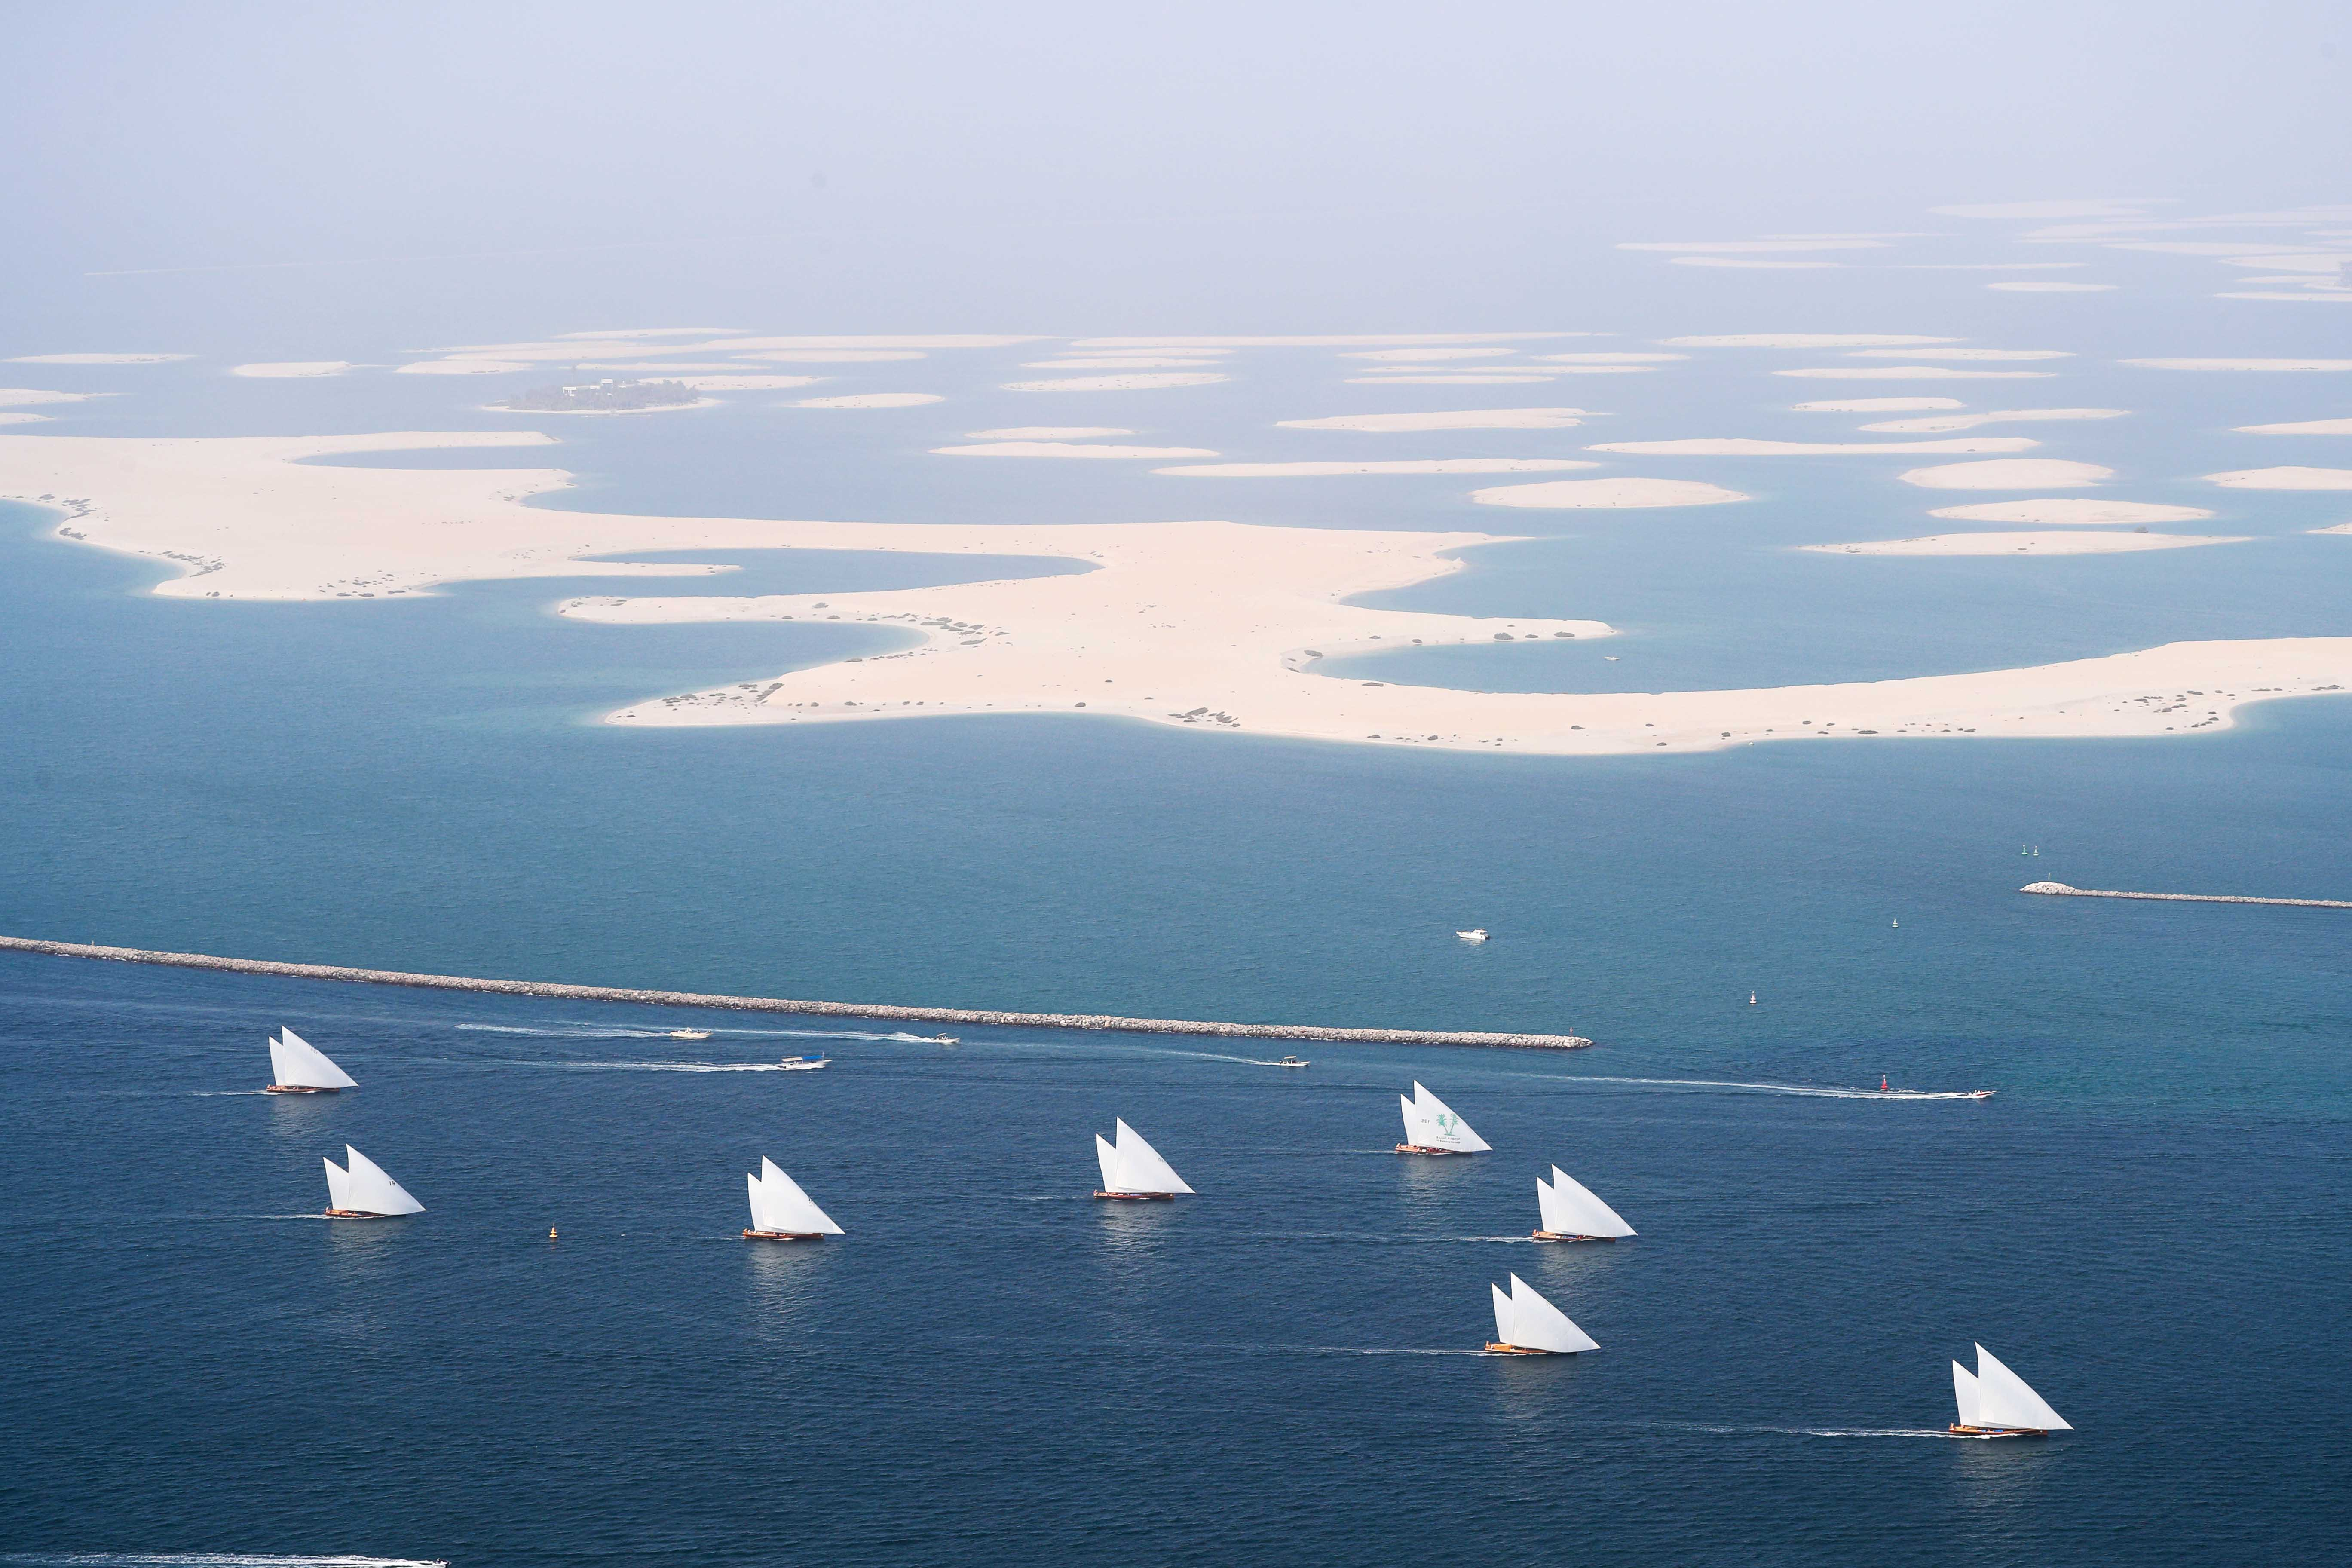 Registration Opens tomorrow for the 60ft Dubai Traditional Dhow Sailing Race - Heat 1